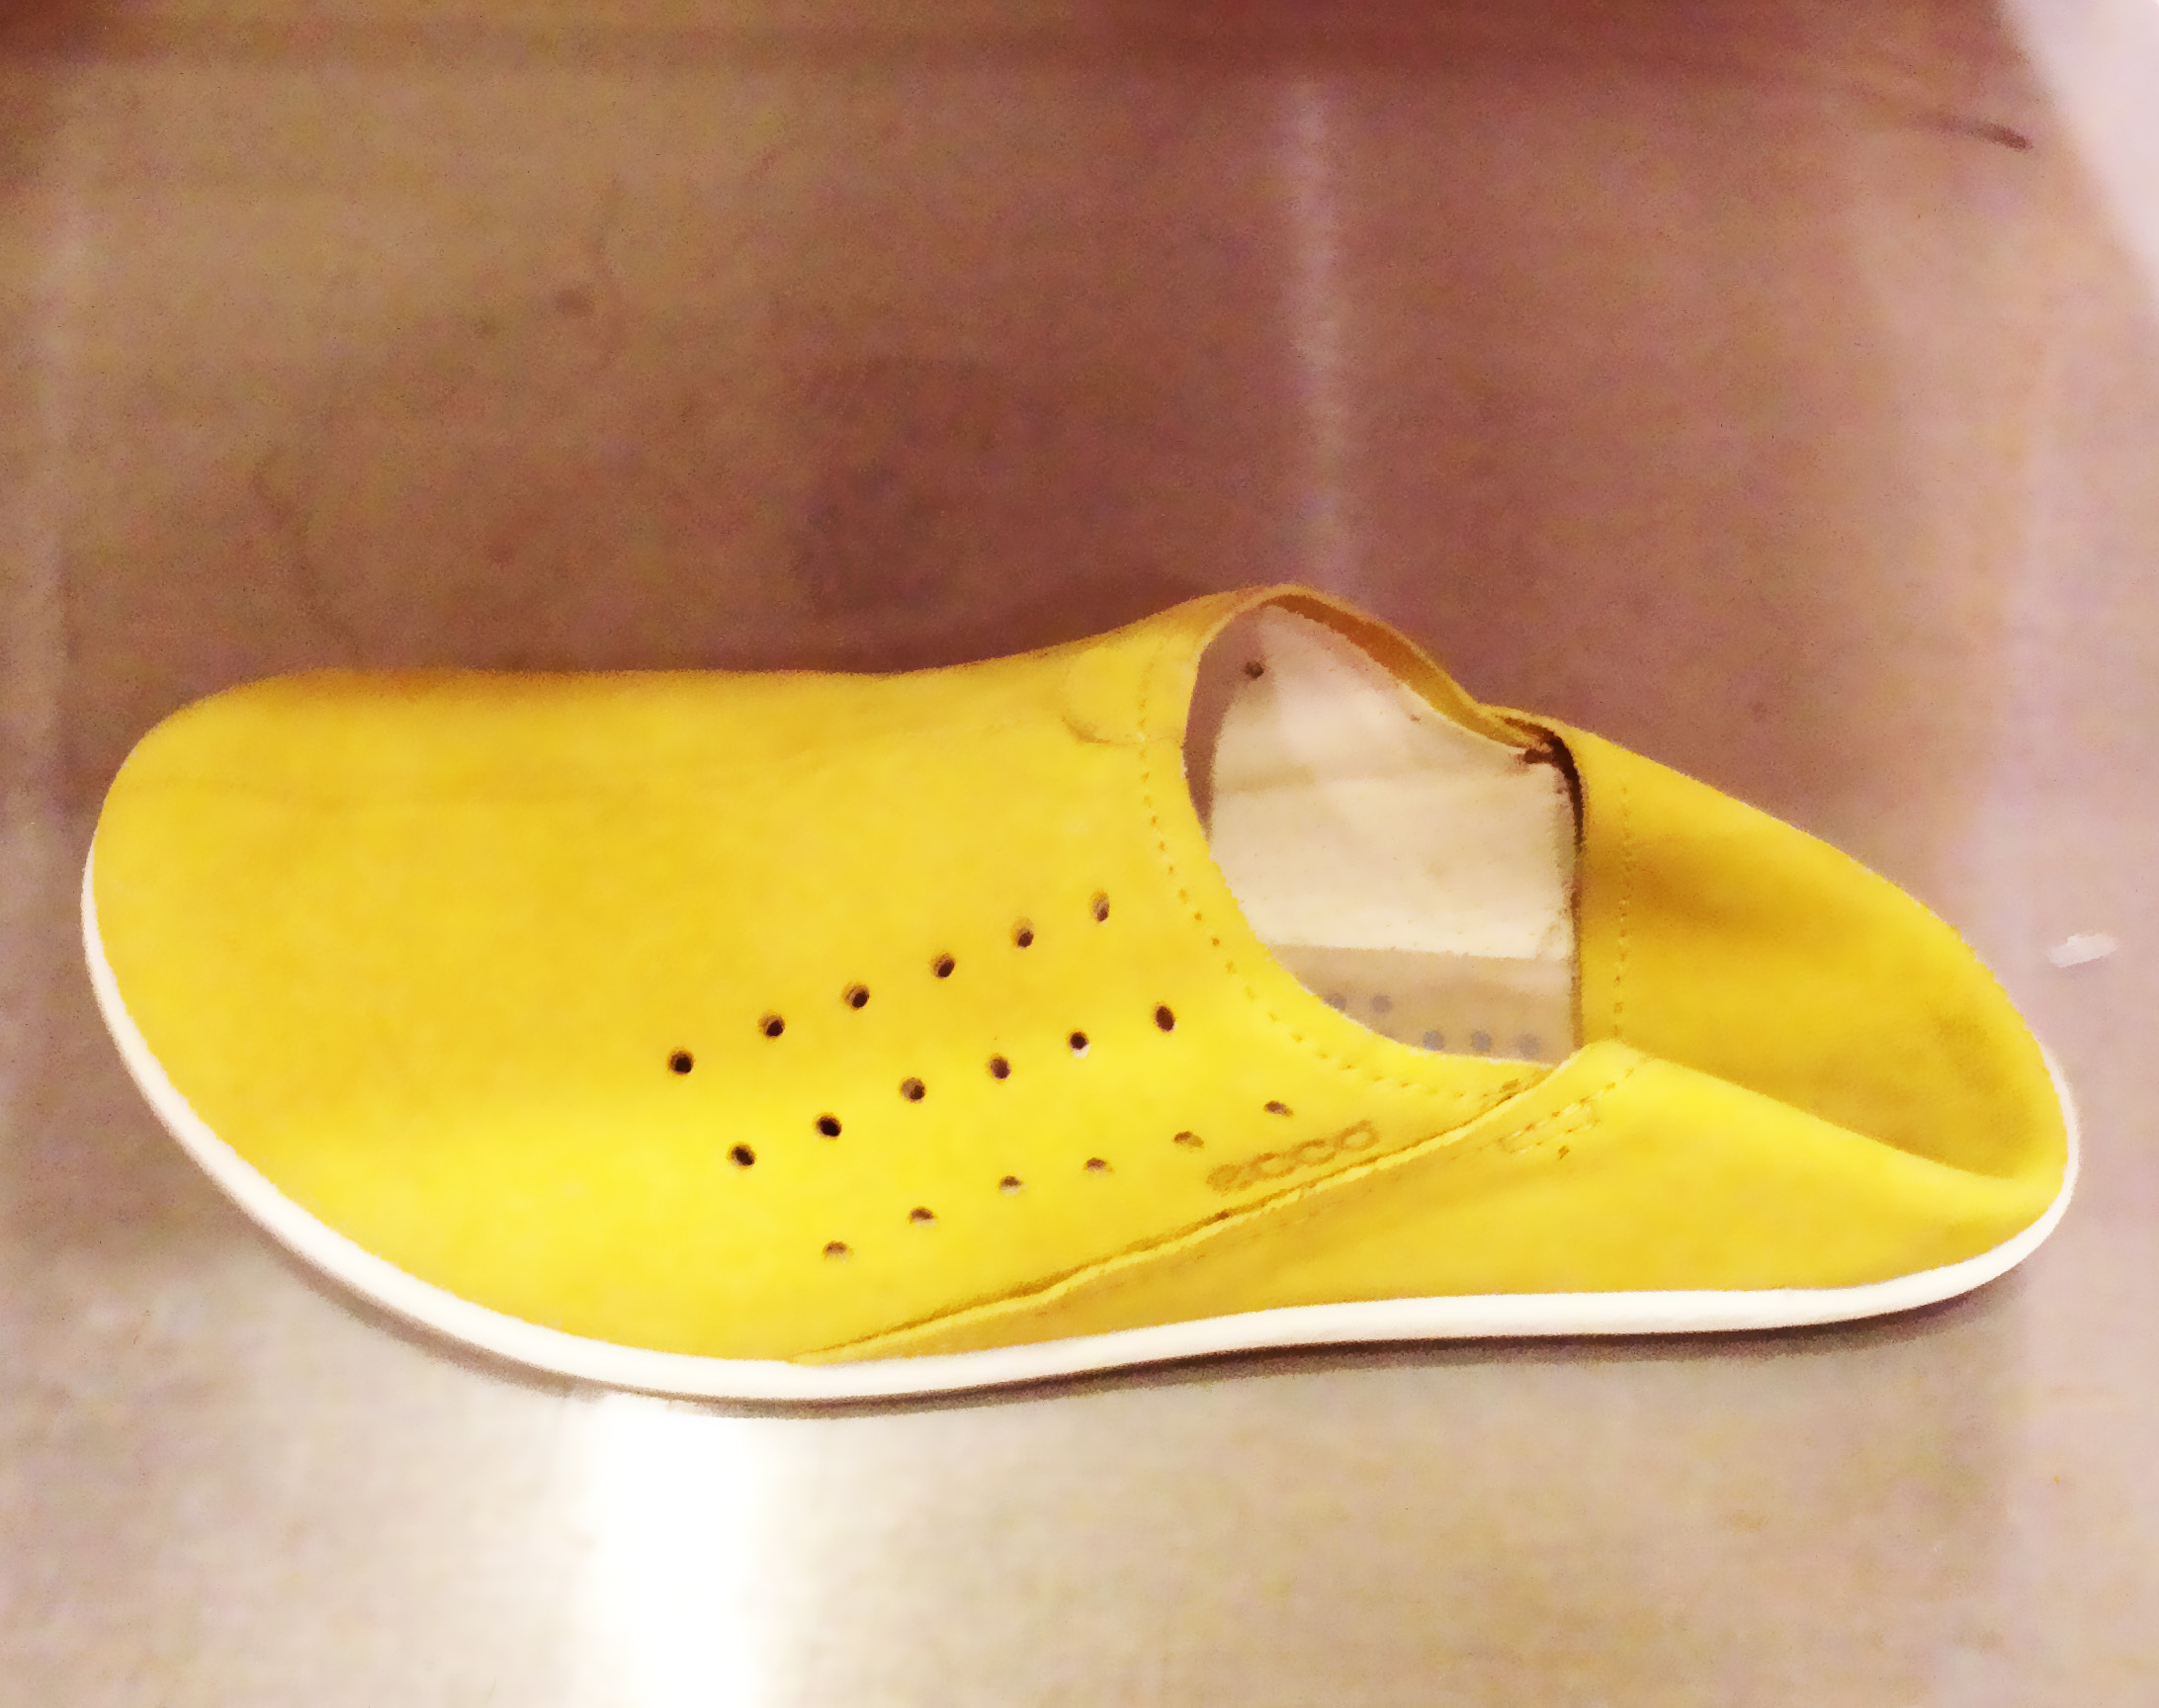 Ecco_Yellow_shoes_heel_folded_In